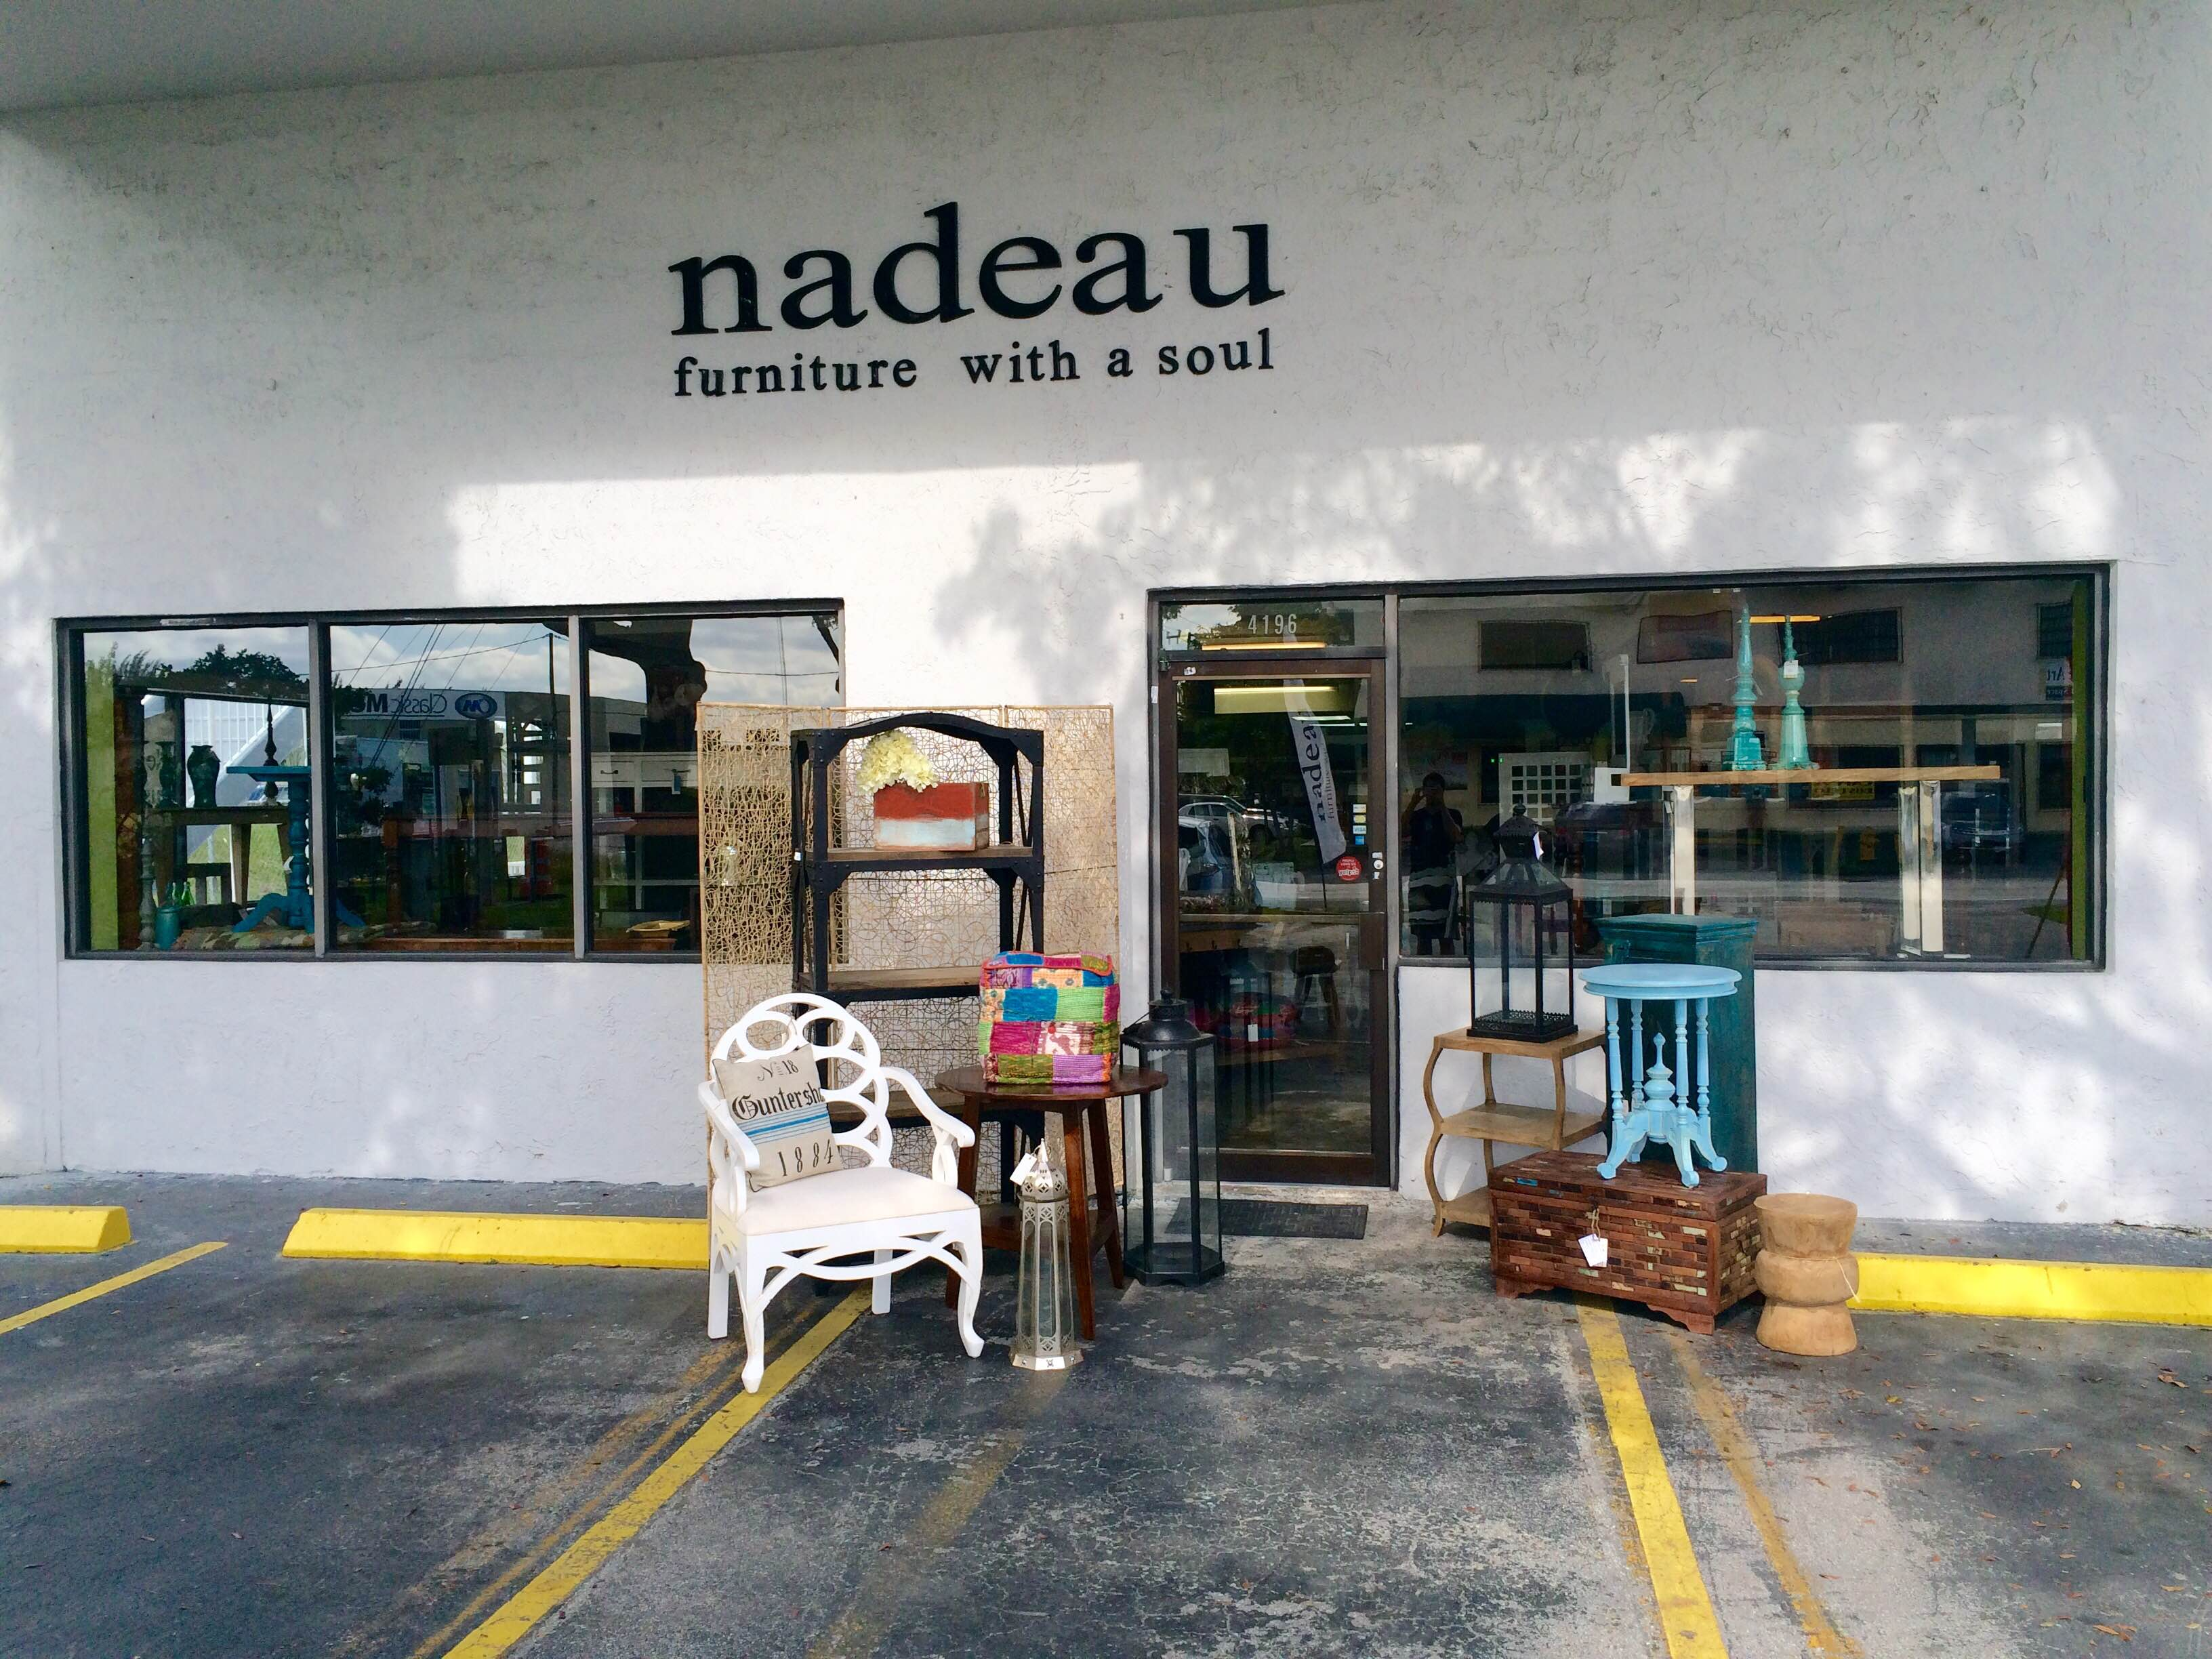 Nadeau Furniture